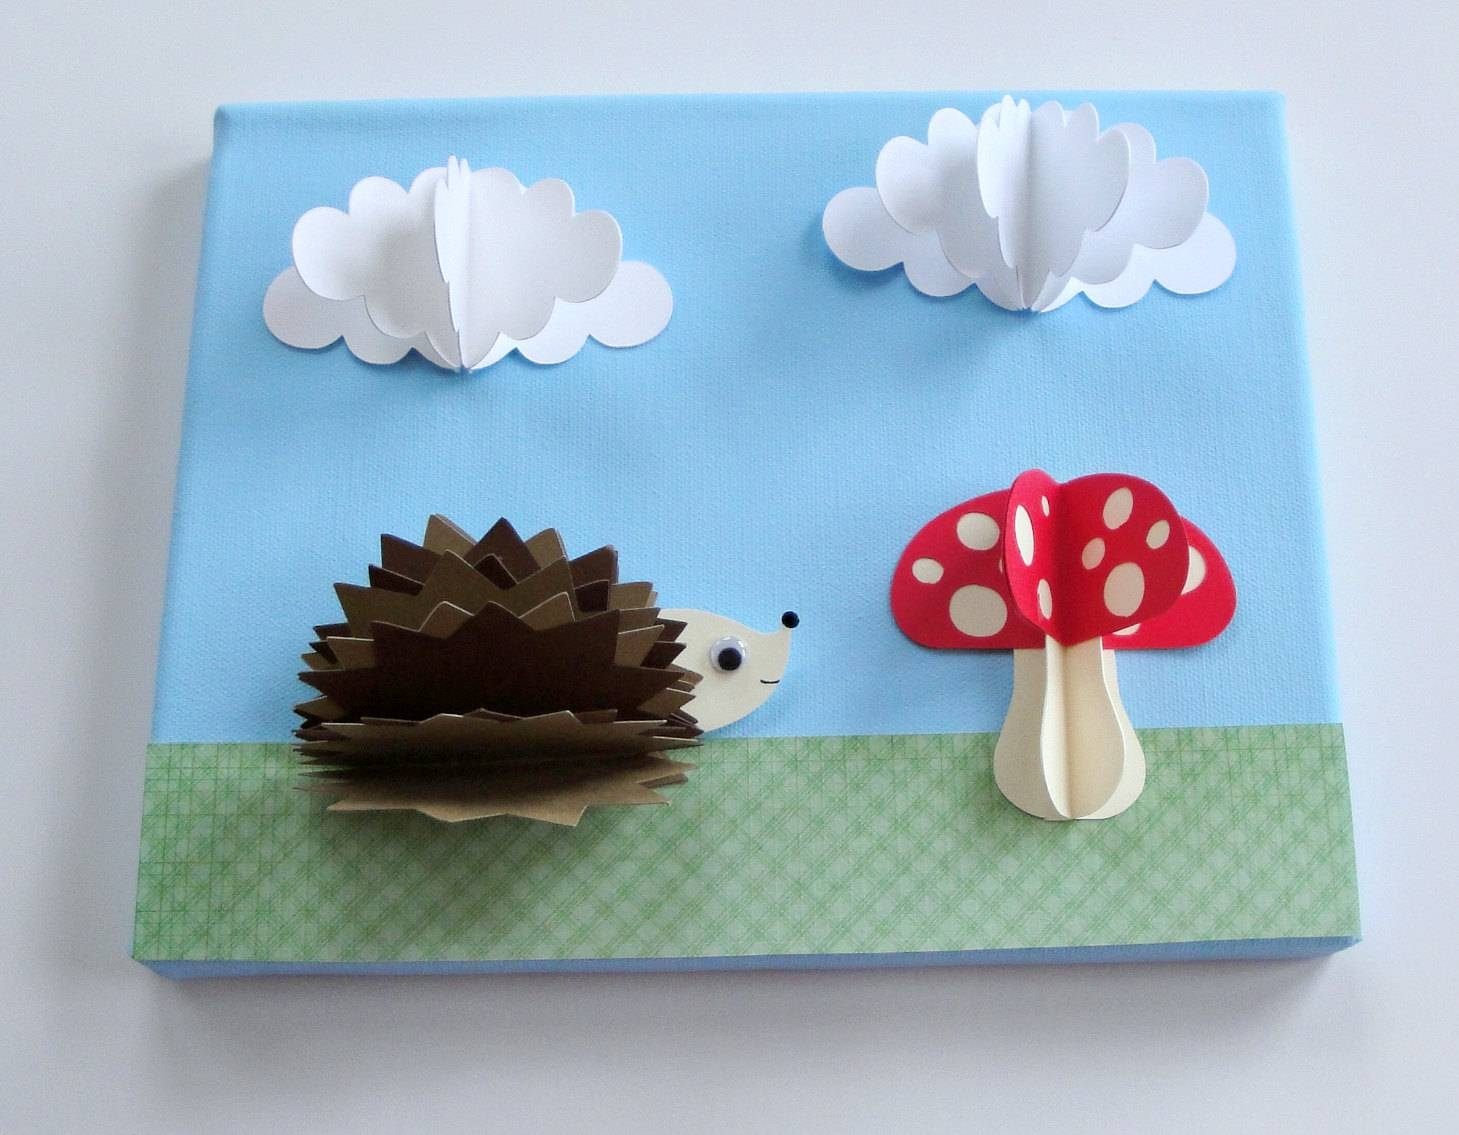 Original Hedgehog And Mushroompaper Wall Art On Canvas Including Intended For Current 3D Paper Wall Art (View 12 of 25)